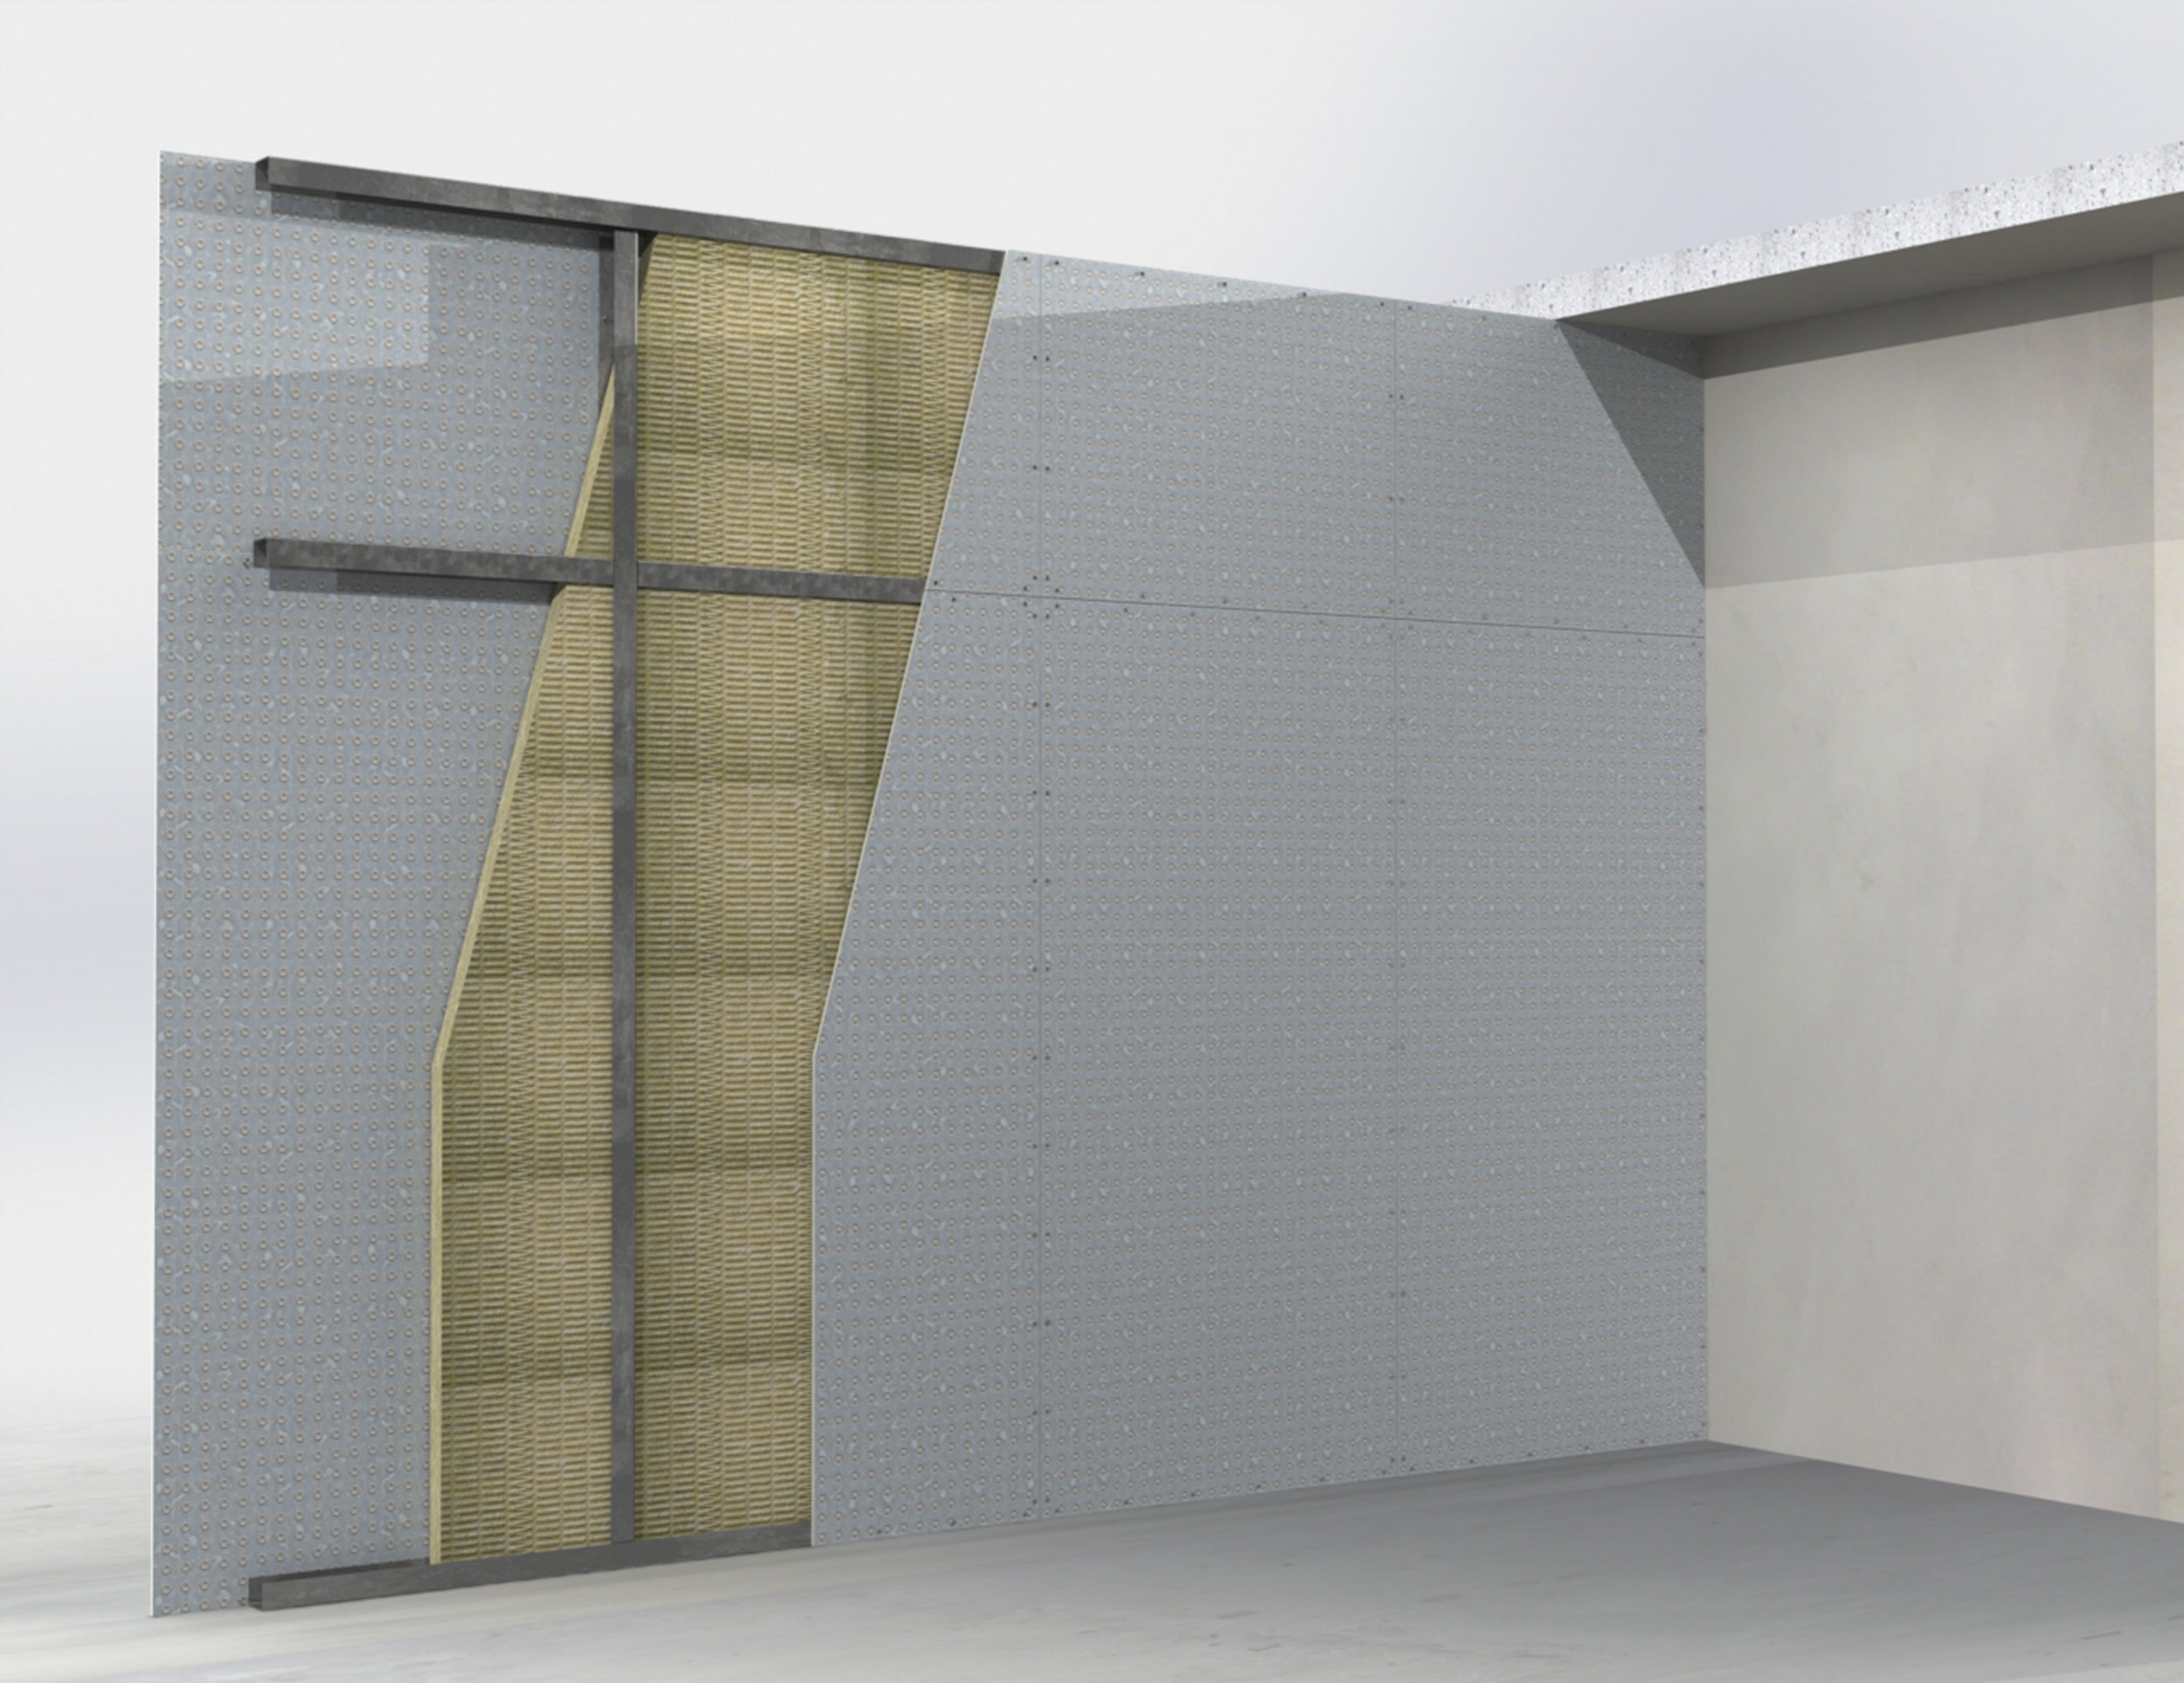 Partitions & External Walls